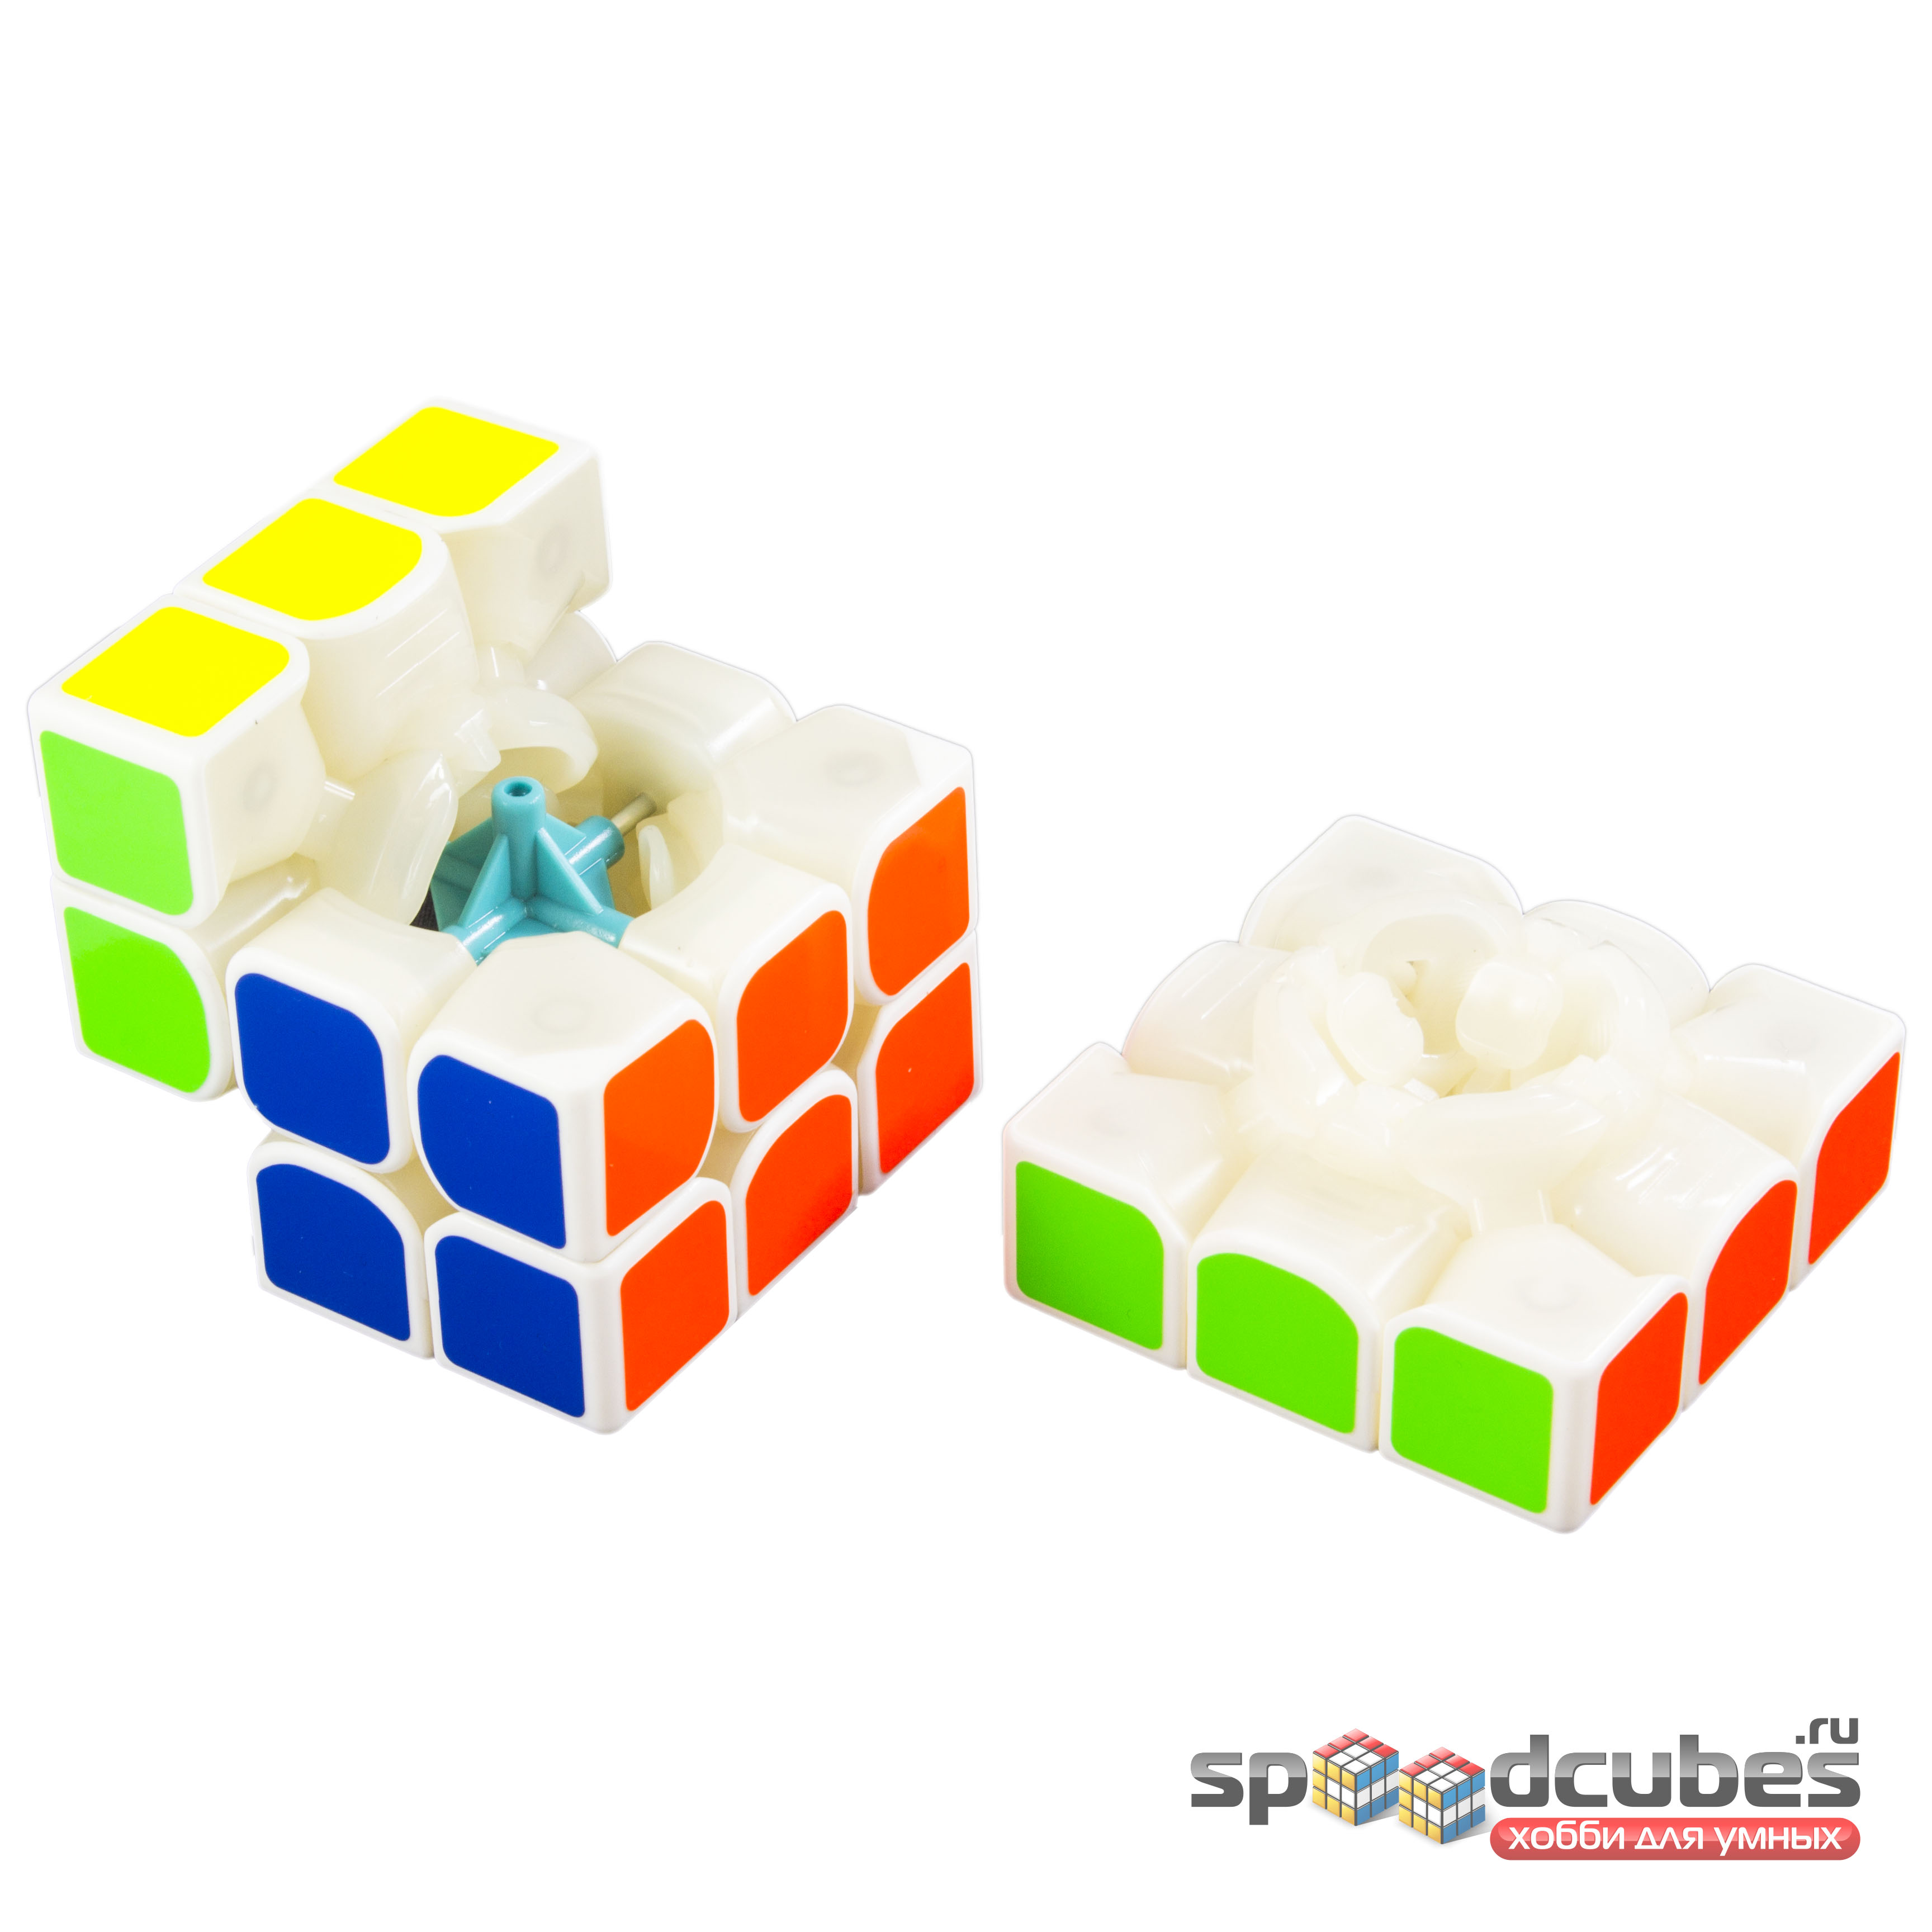 Yj Mgc 3x3x3 Magnetic 4 White